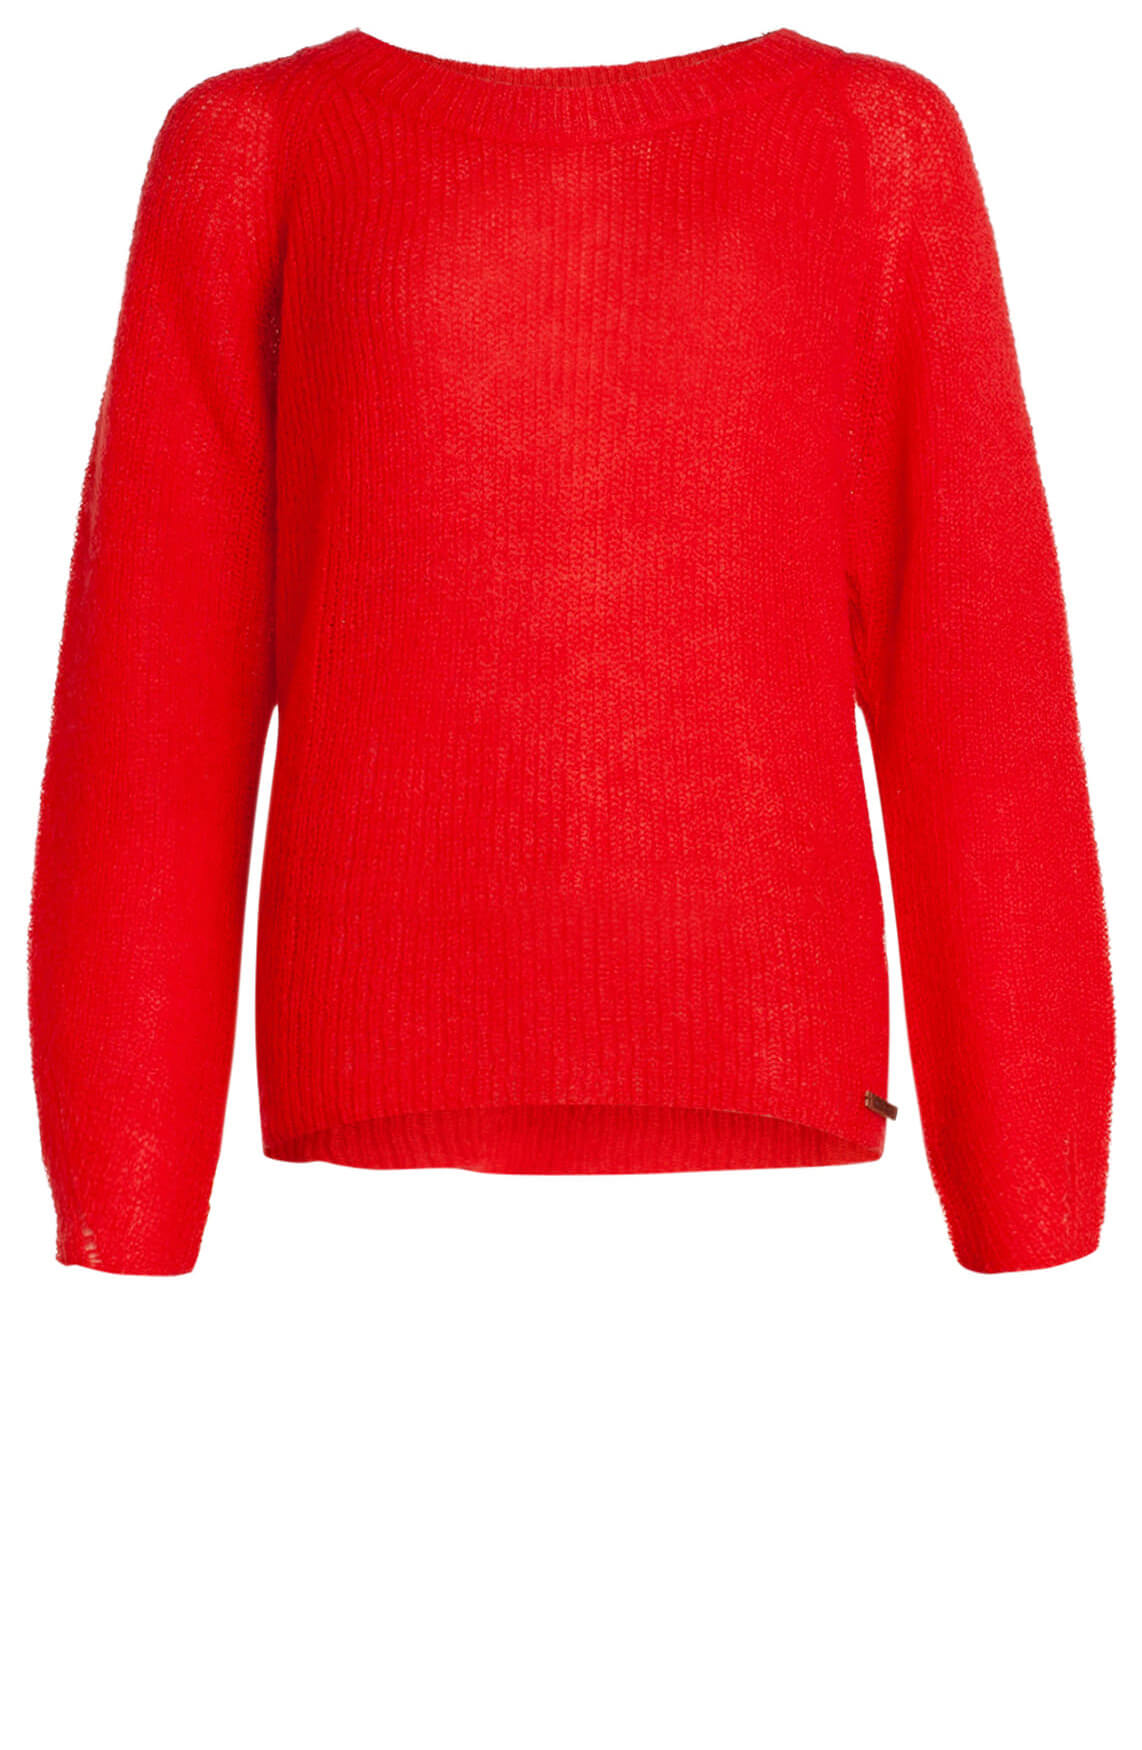 Moscow Dames Gebreide pullover Rood